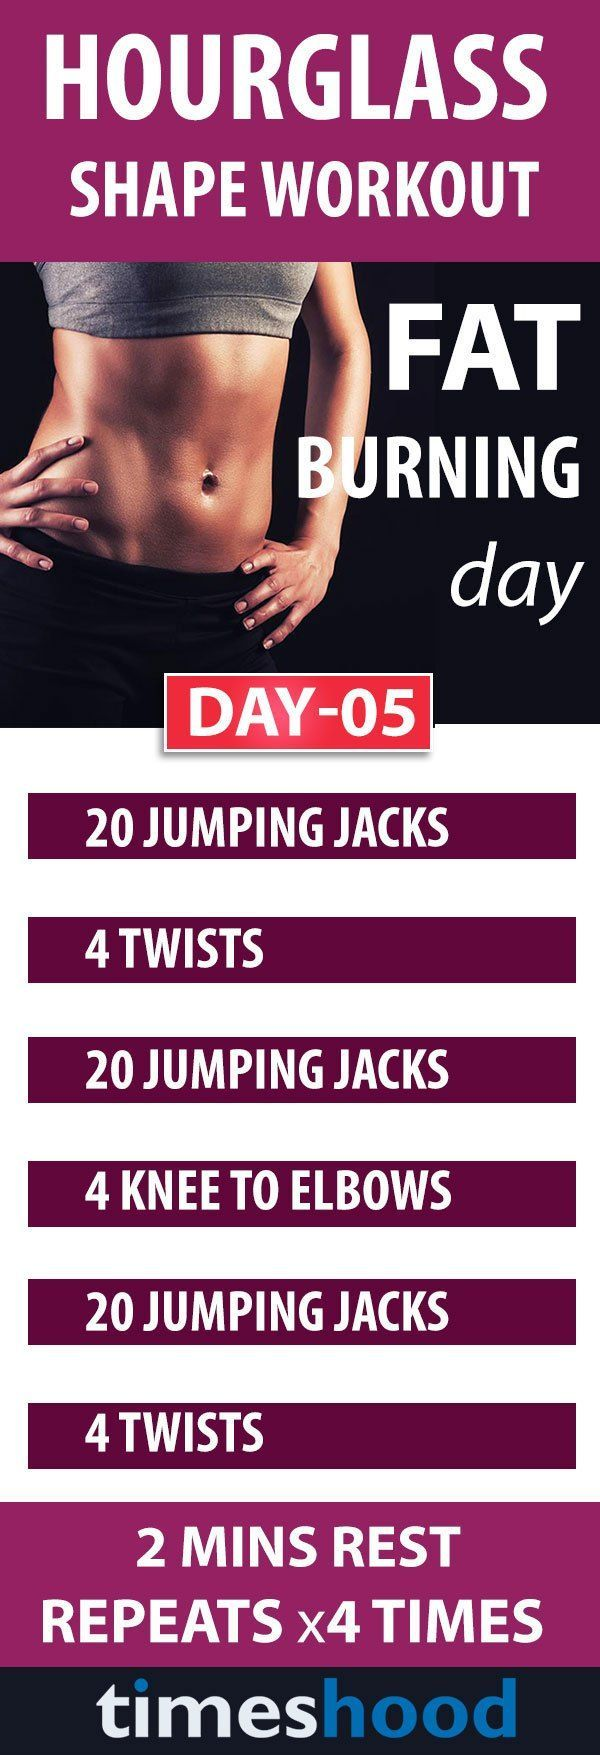 Trying to get an hourglass figures? Try this total body workouts to get an hourglass shape. Its 10 days workouts plan for beautiful curves, sexy abs, slim waist, and bigger butt. Every day will target on different body part. Best workouts for women. Fat burning workouts plan: day 5. Best workouts plan for women. Total body workouts for women. Best exercise for hourglass shape. Best tips to get an hourglass shape. Fat burning workouts plan. #workouttips